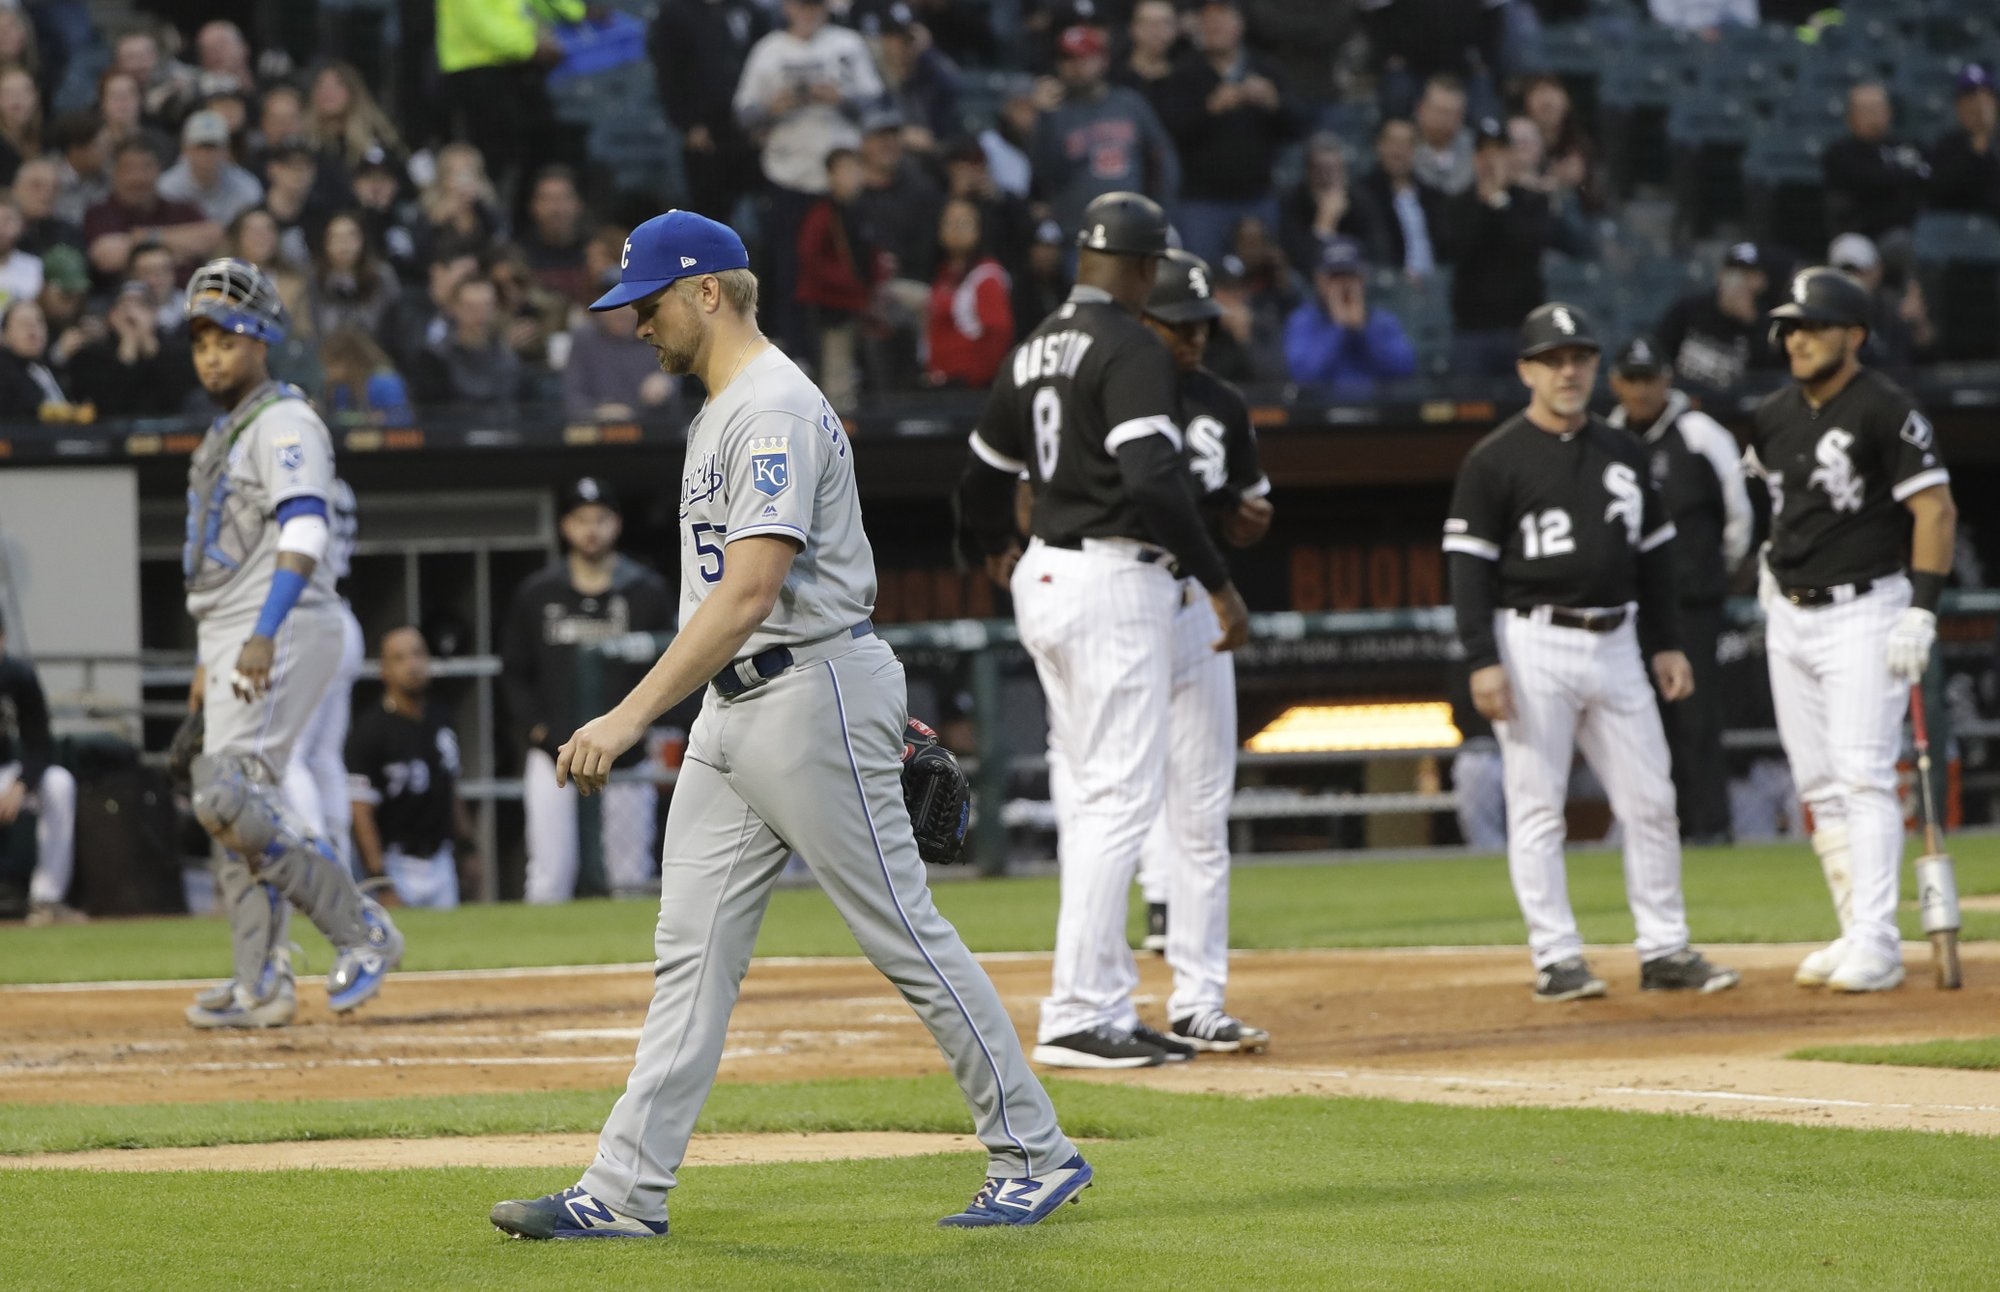 Royals' Sparkman ejected after beaning Chicago's Anderson